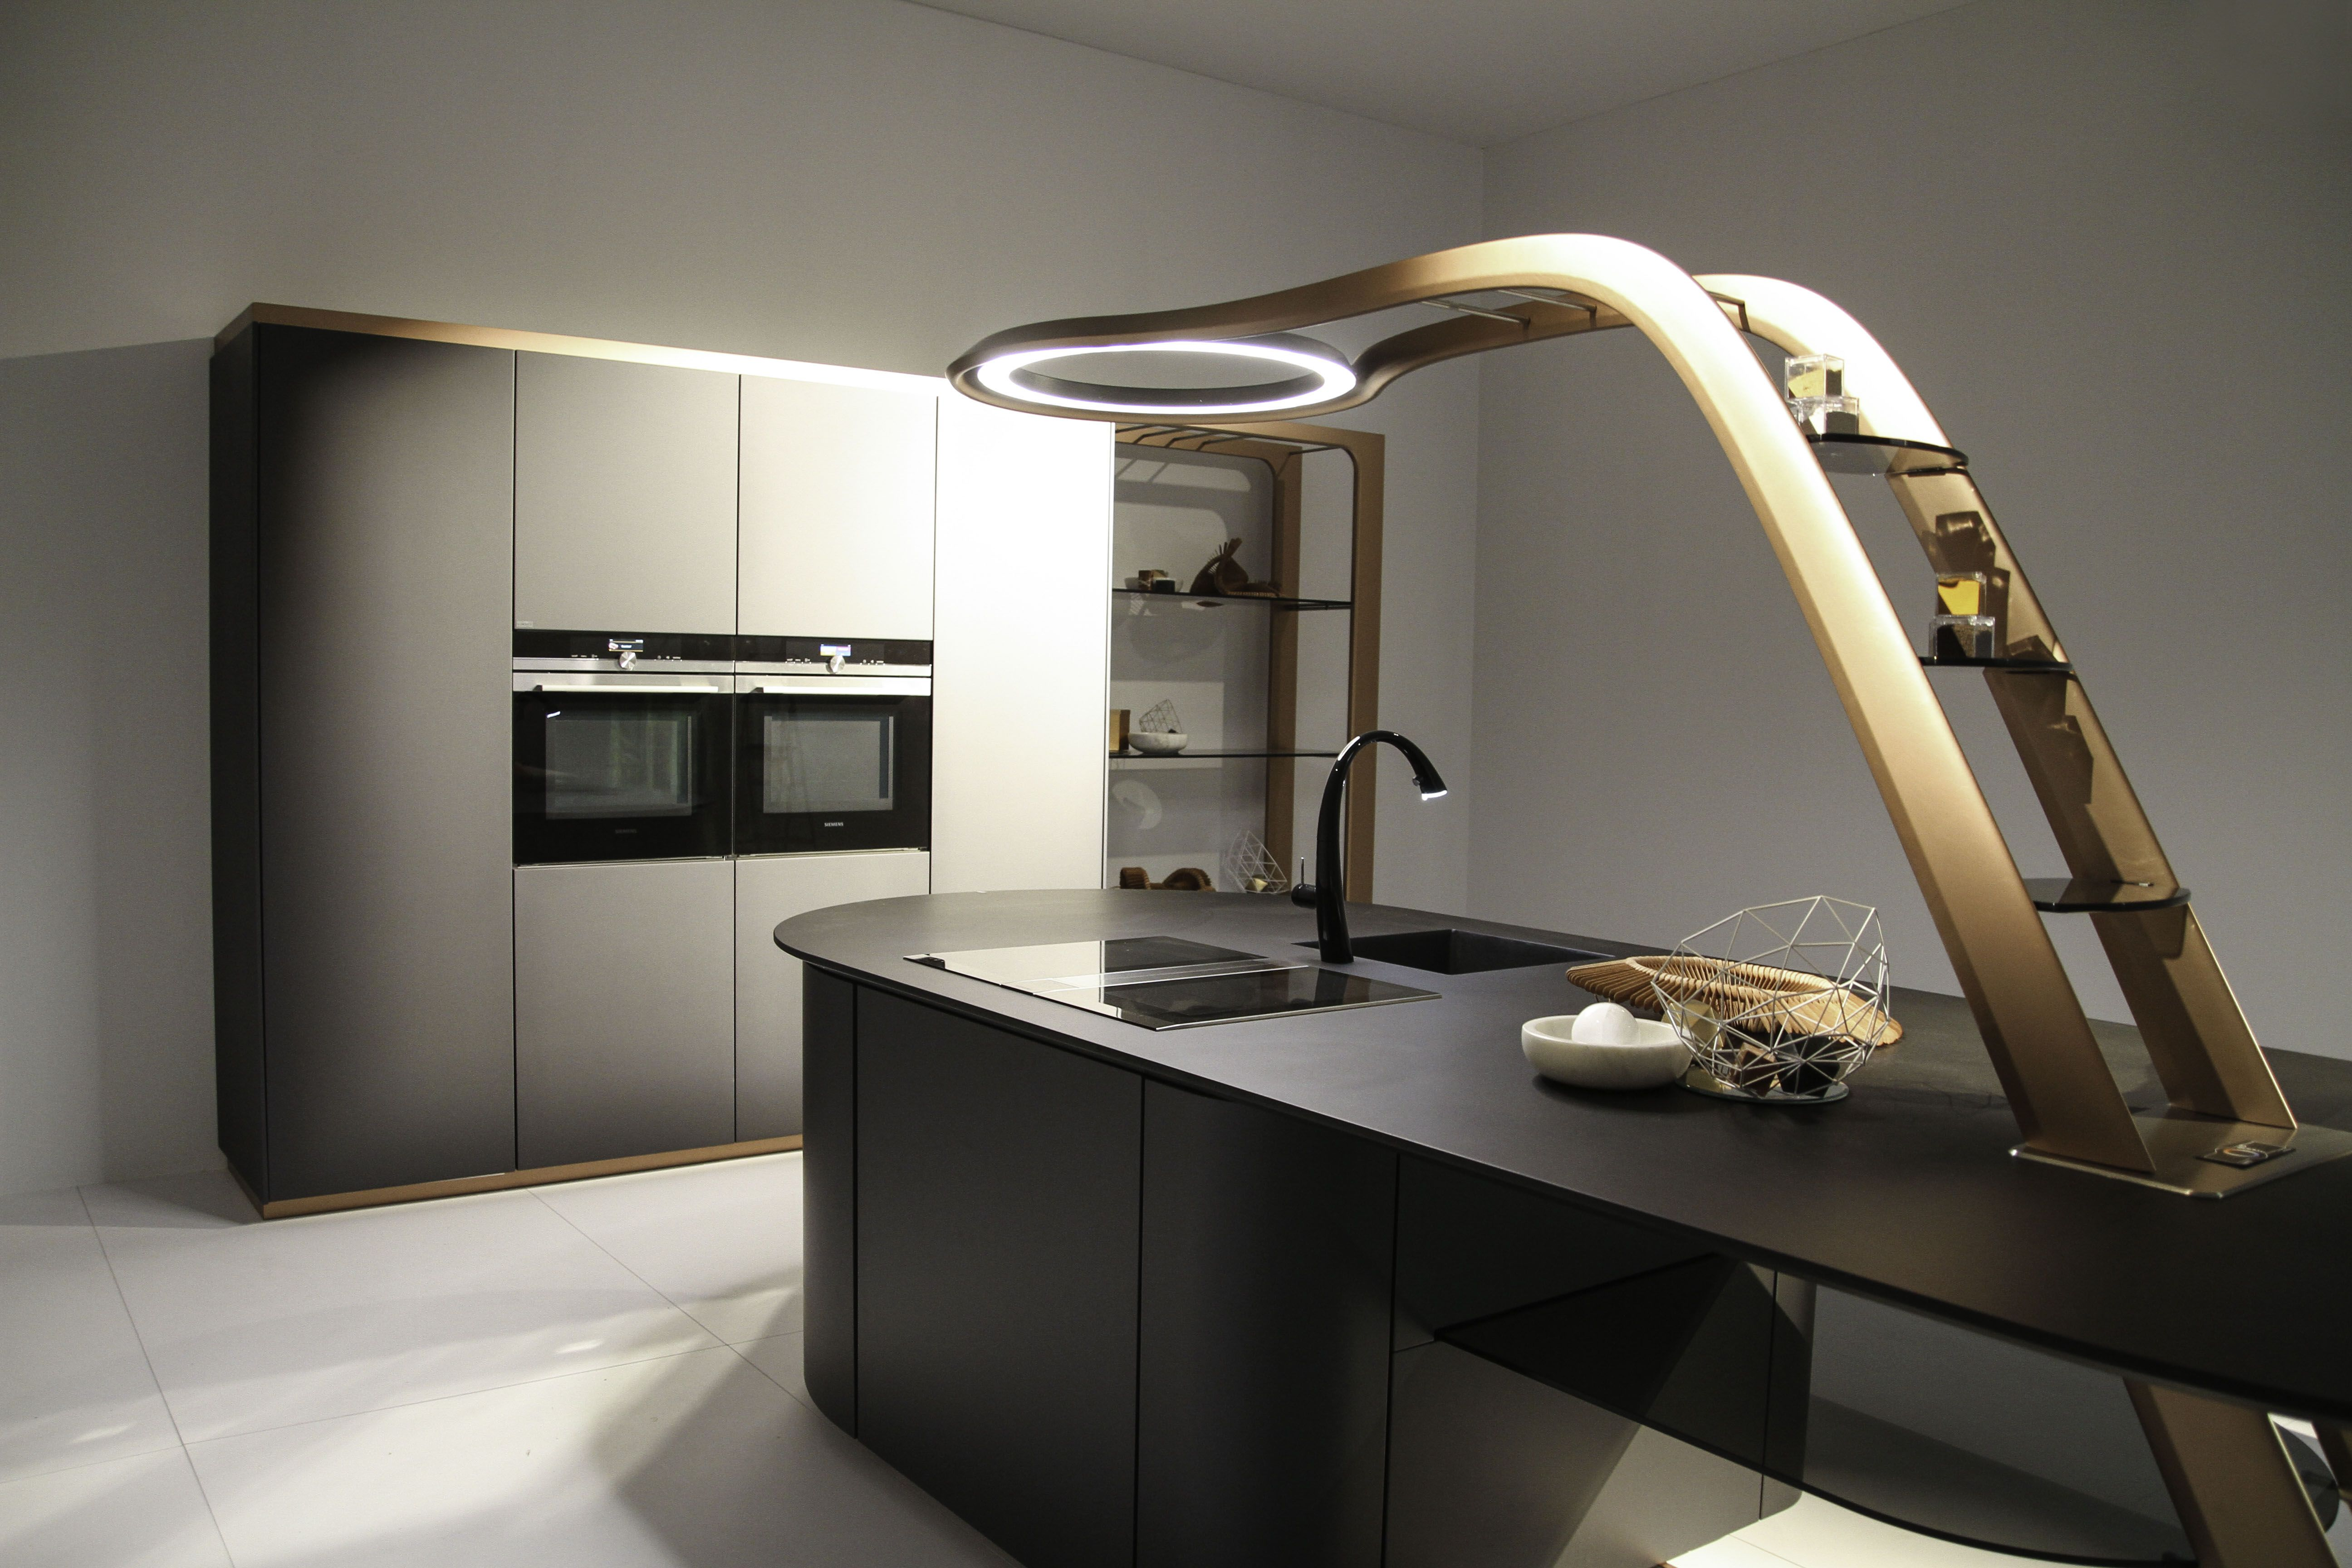 Snaidero Concept Aria The Structure Counter Top Is Made Of Carbon Fiber So It Is Light And Ve Luxury Kitchen Island Kitchen Design Open Modern Kitchen Design